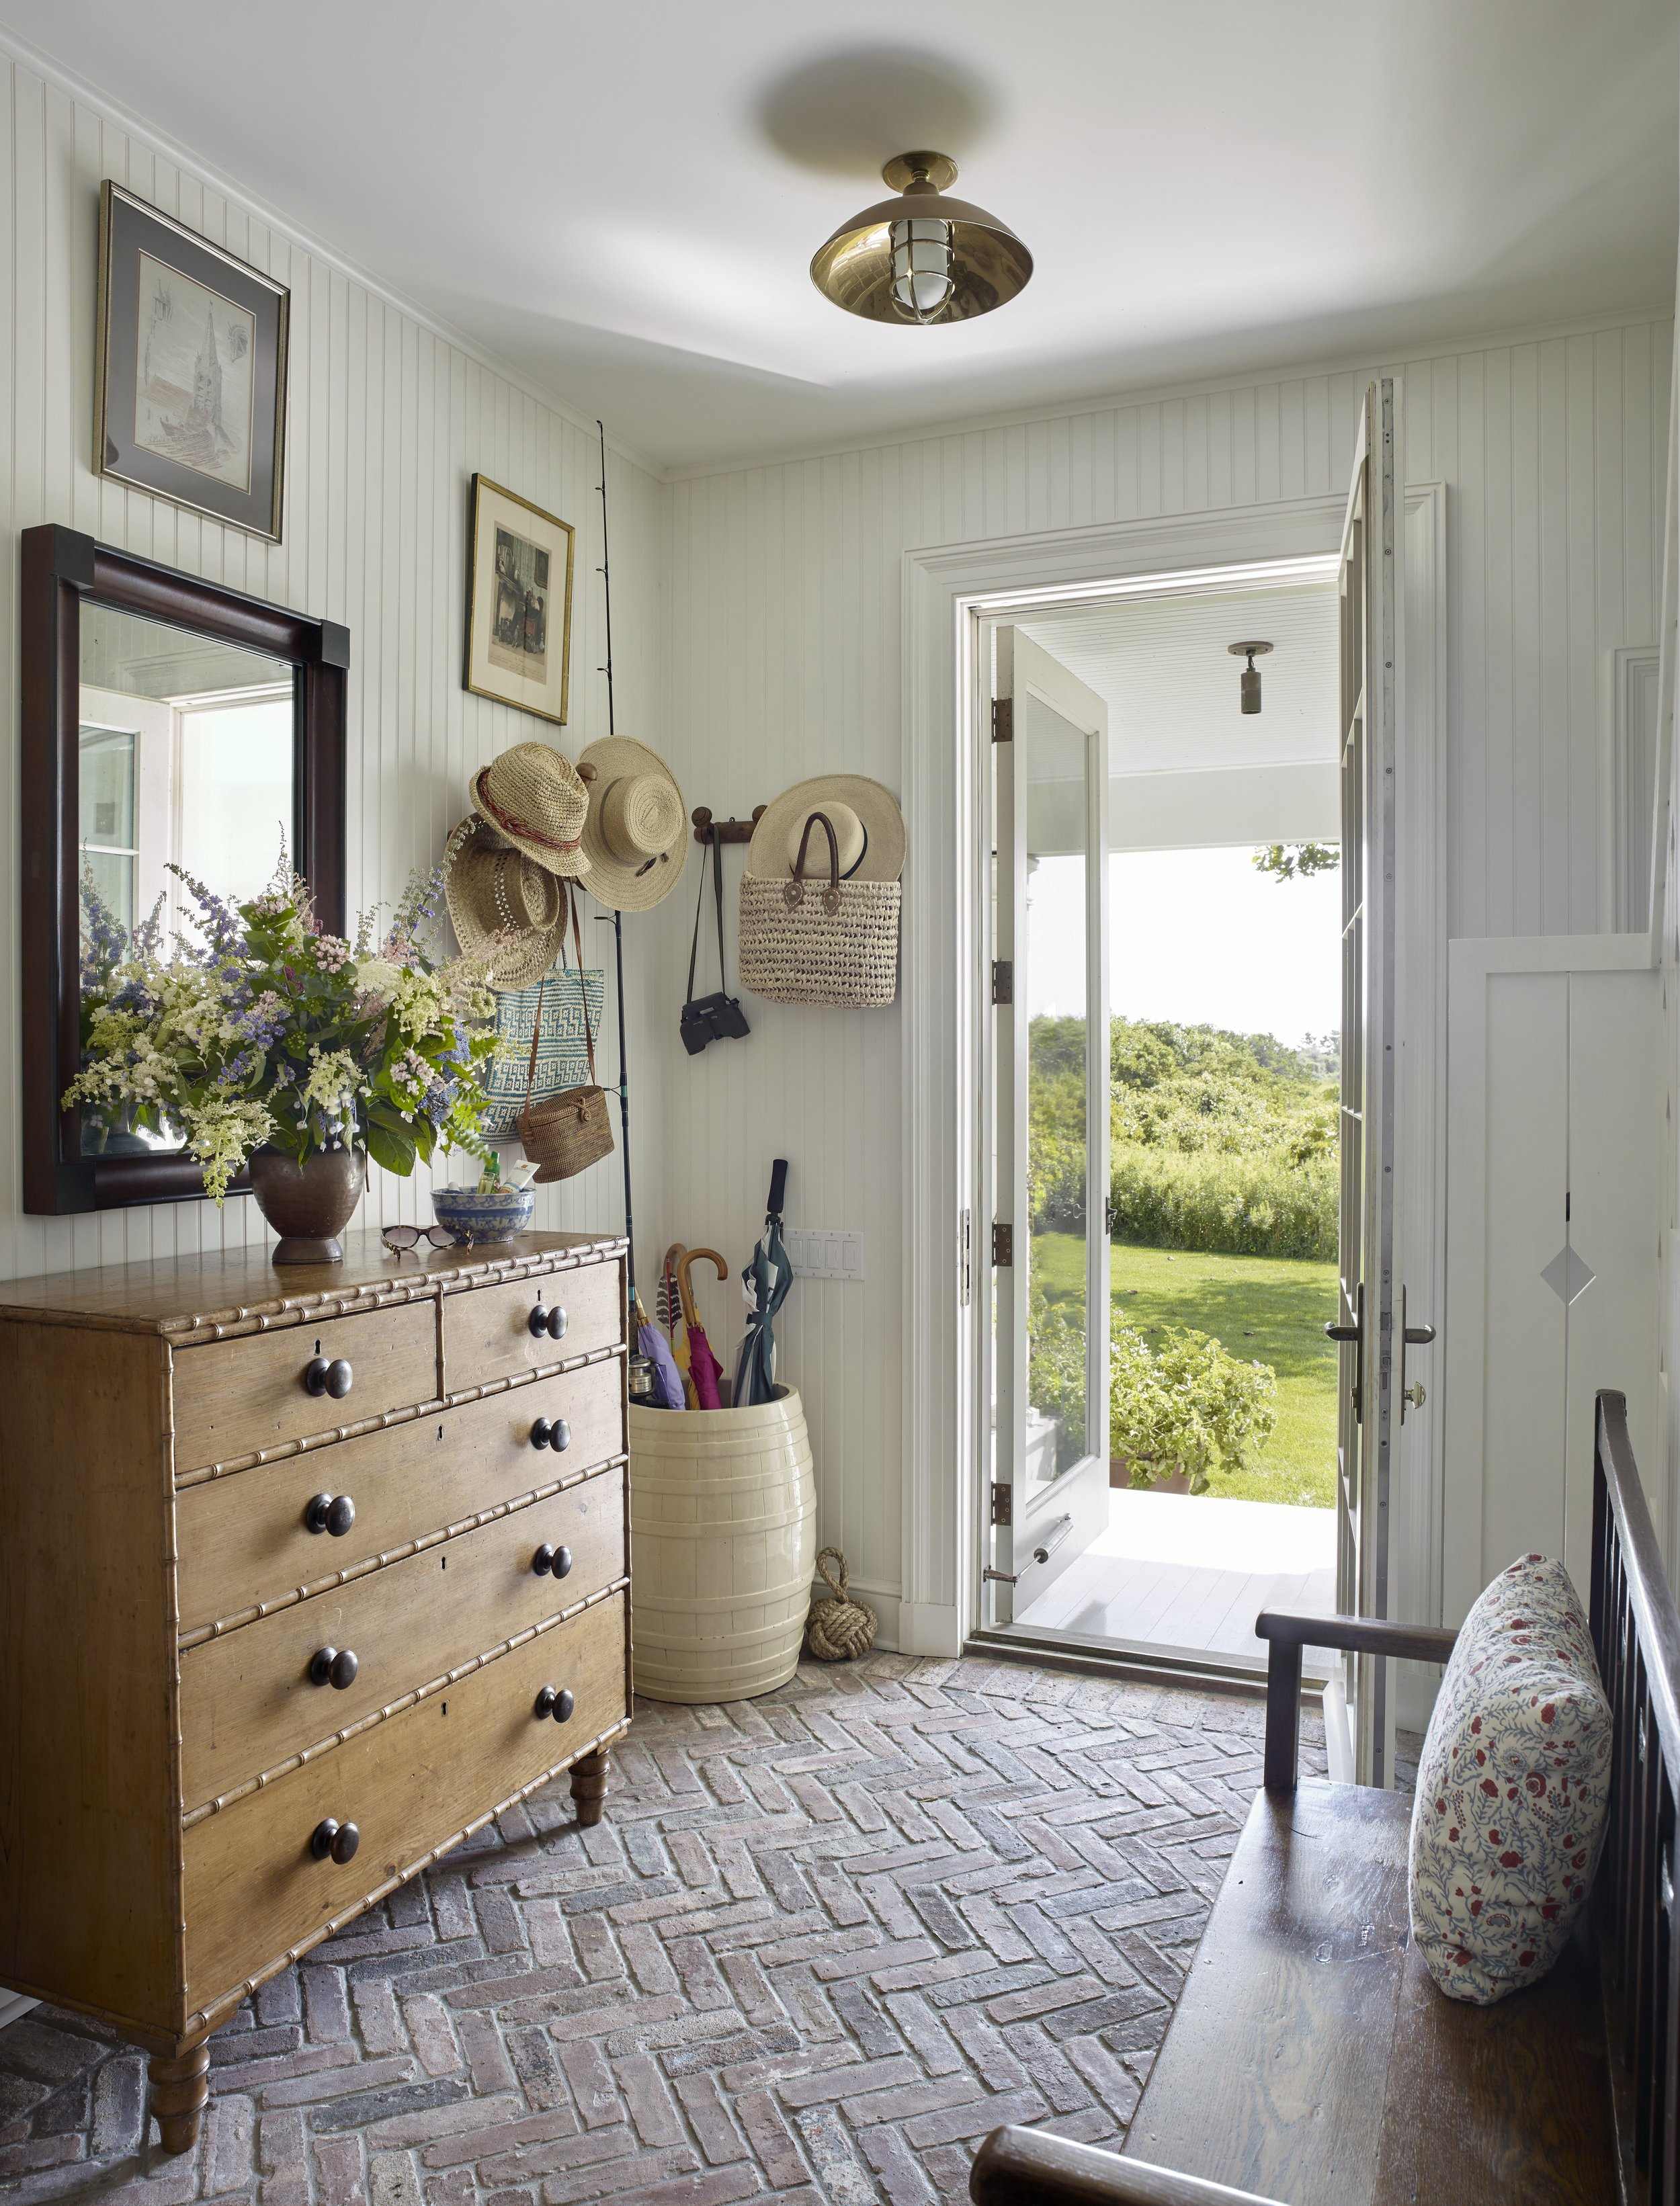 The mudroom of a home in the Hamptons.